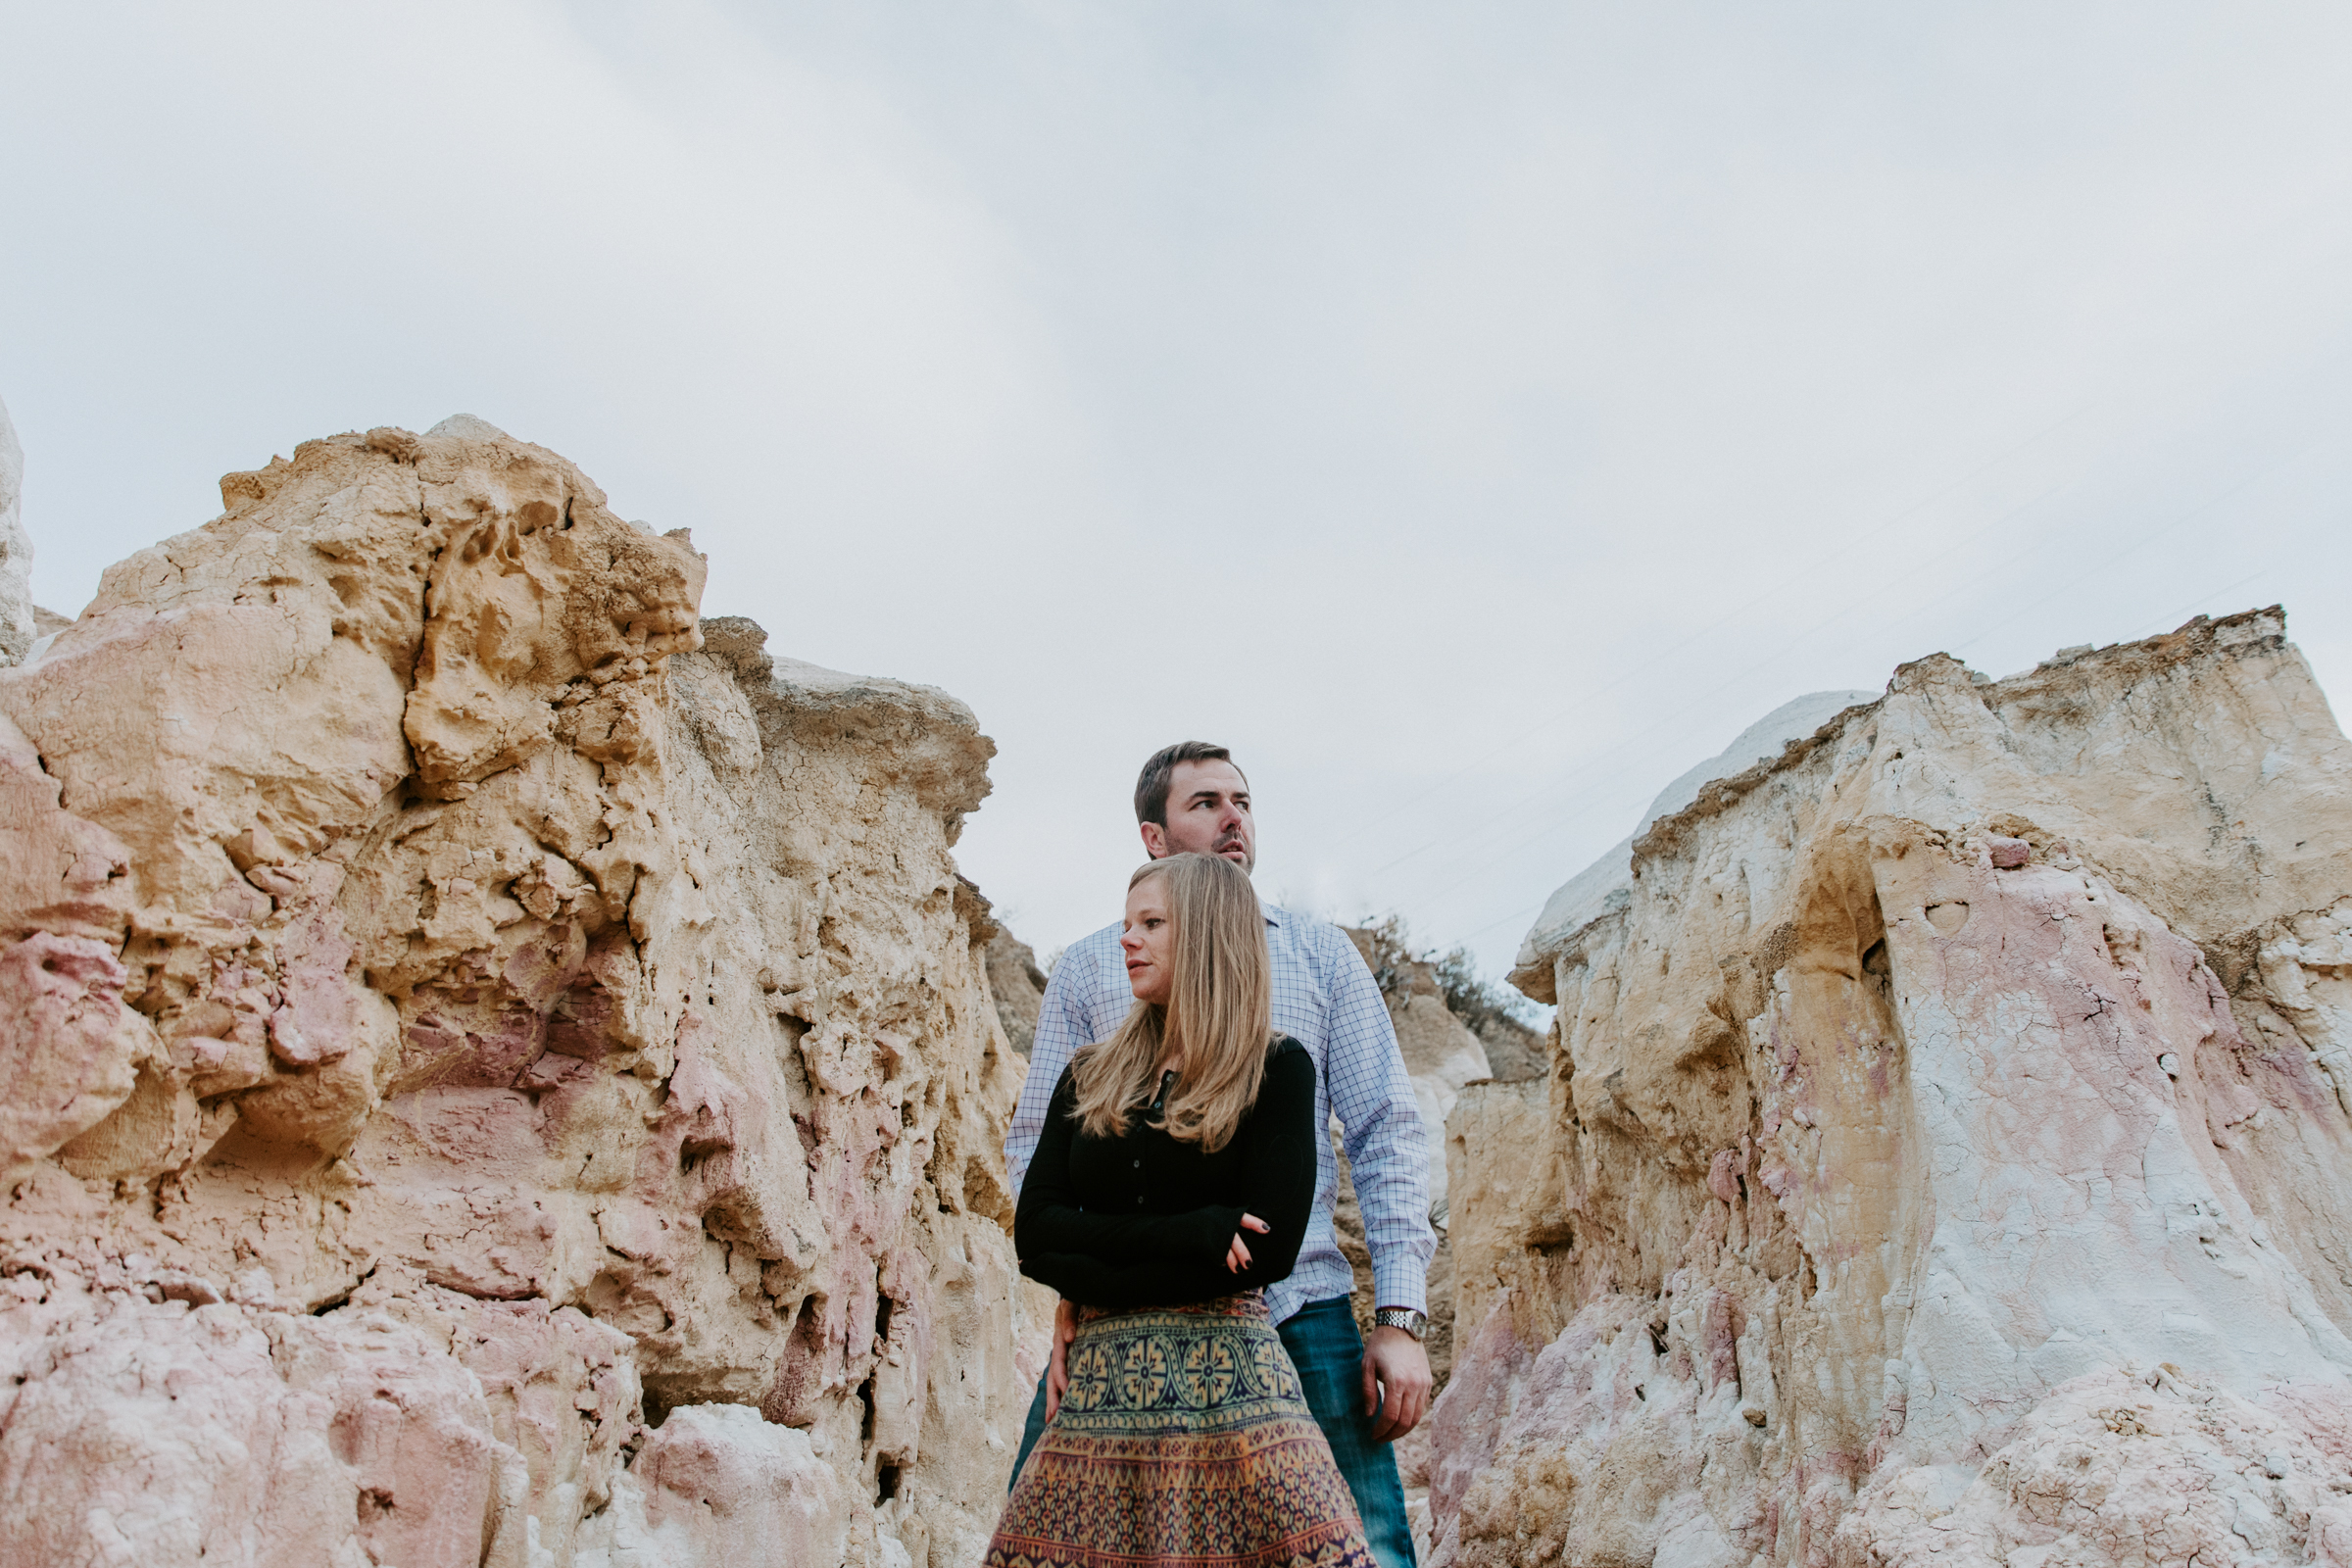 Chris+Maggie.Engagement-couturecoloradosubmission-40.jpg